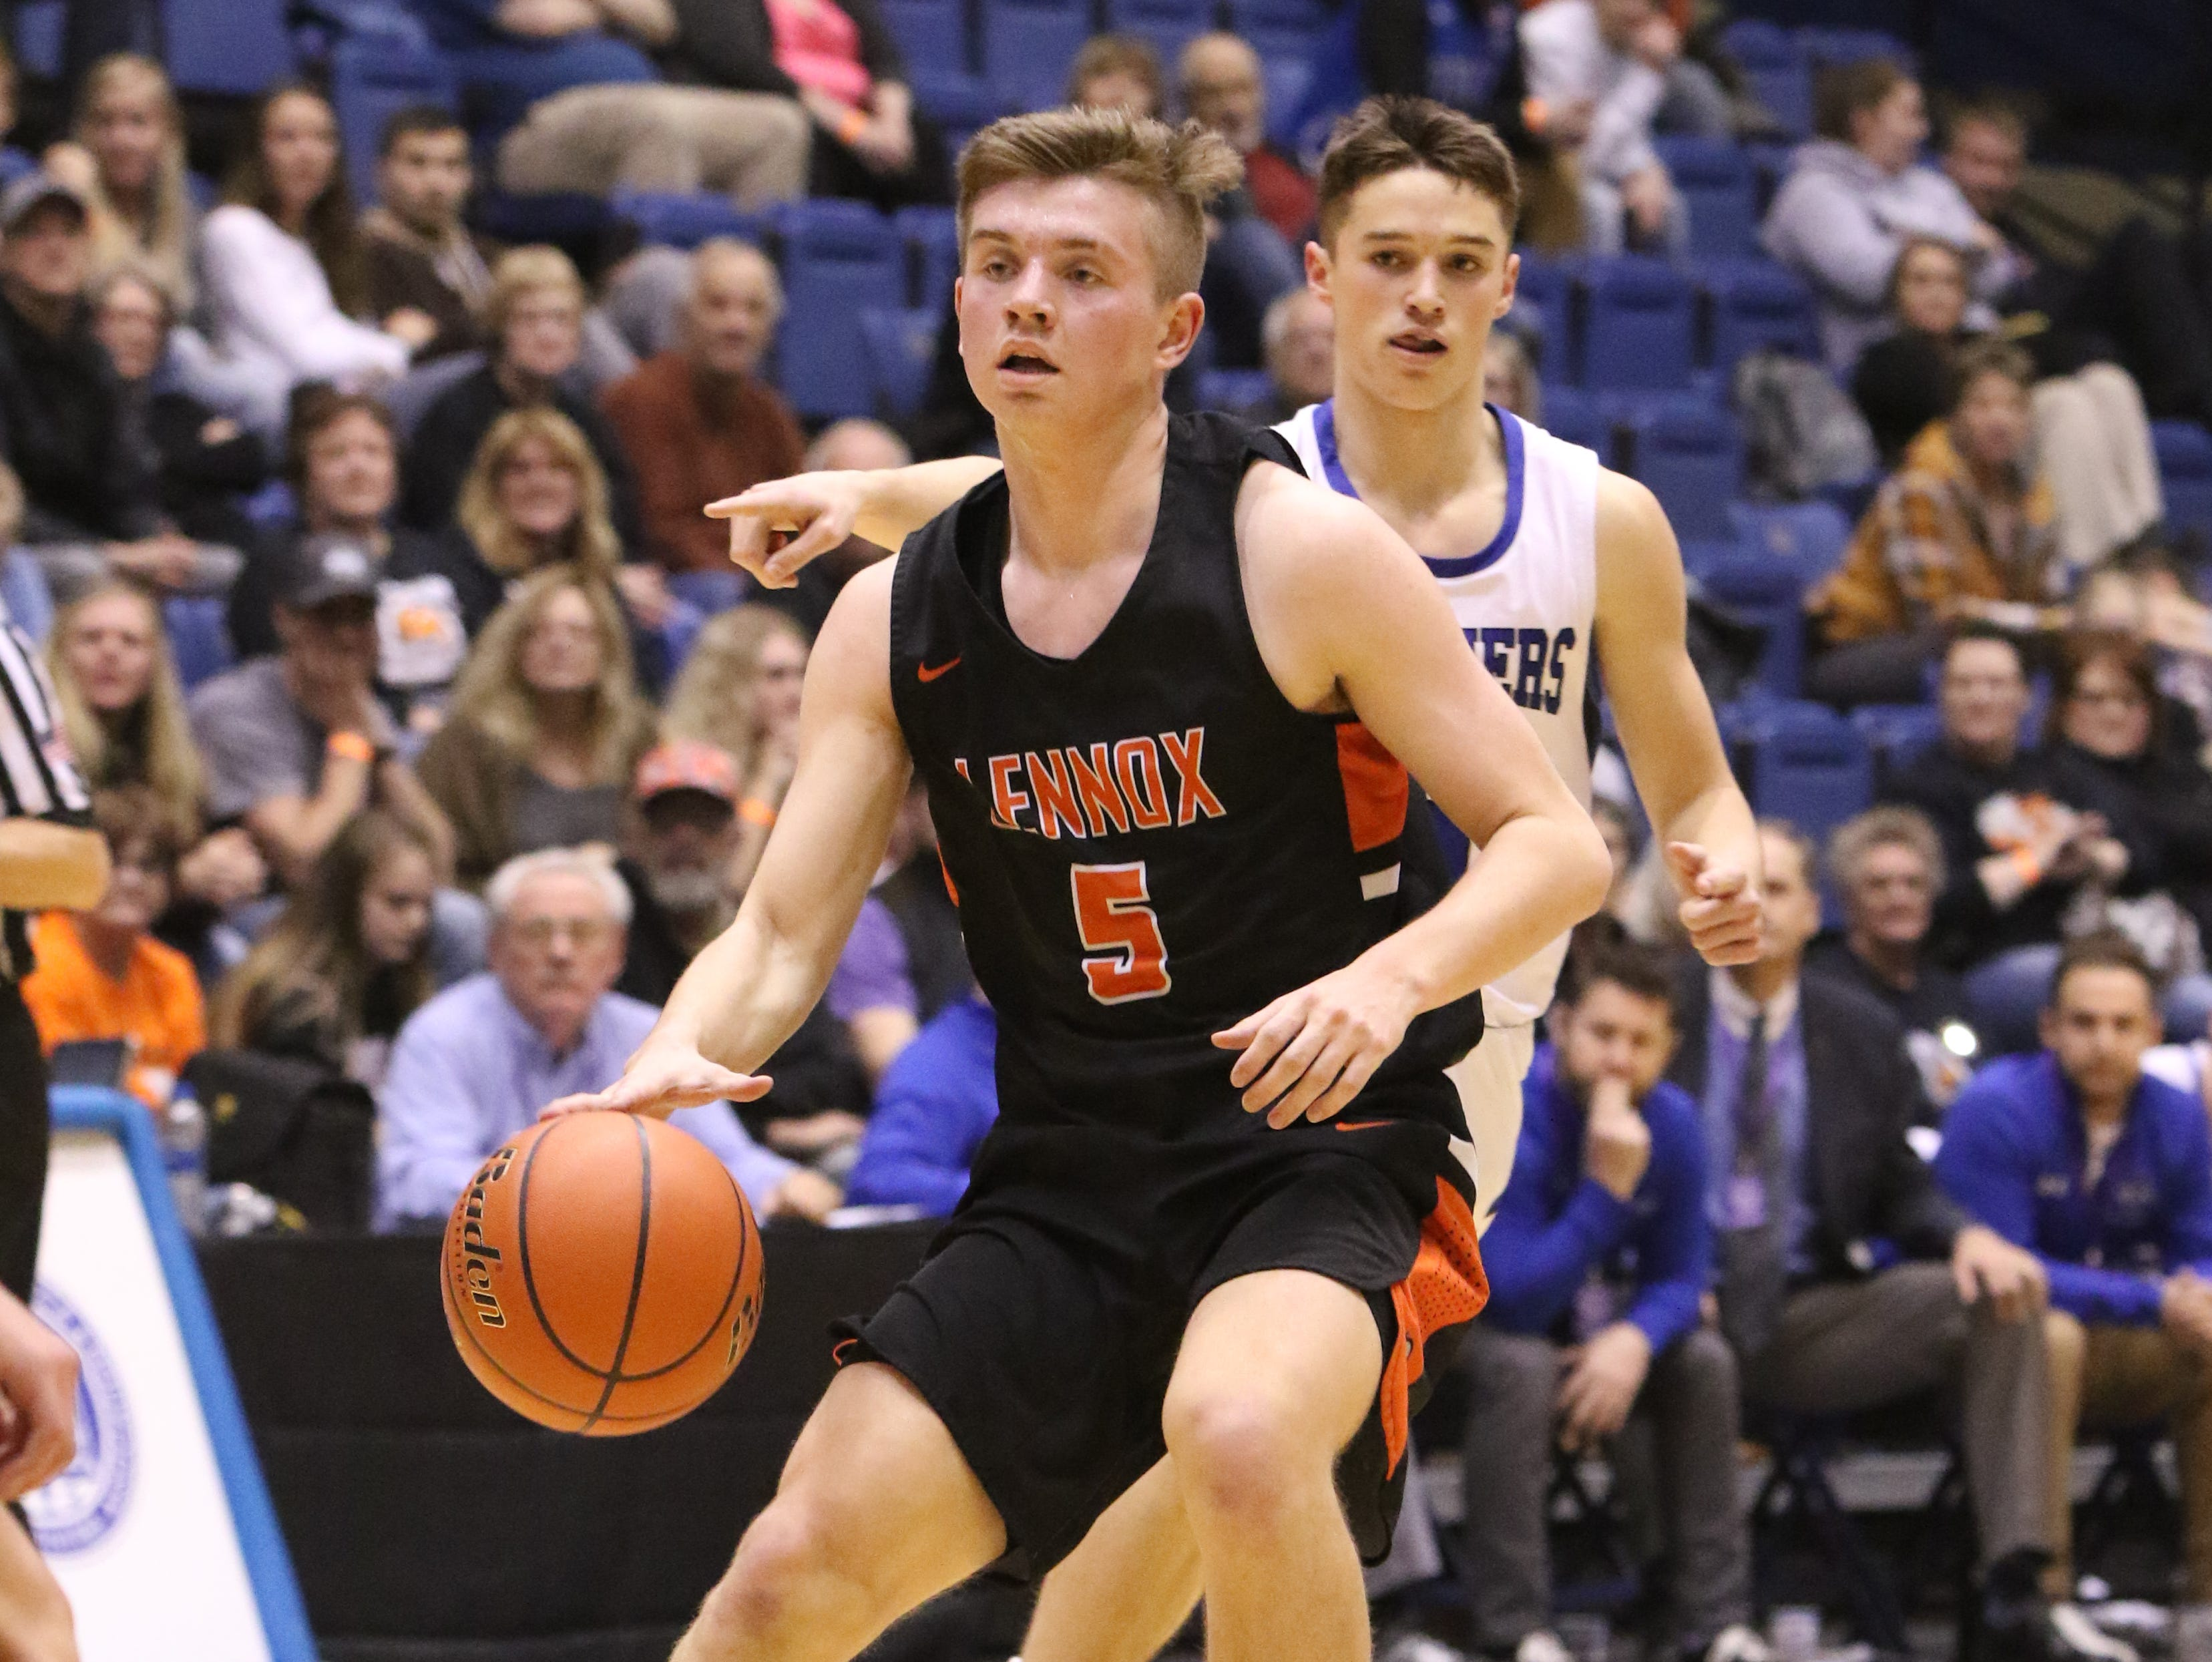 Josh Arlt of Lennox dribbles ahead of Michael Gylten of St Thomas More during Thursday night's game at the Arena in Sioux Falls.